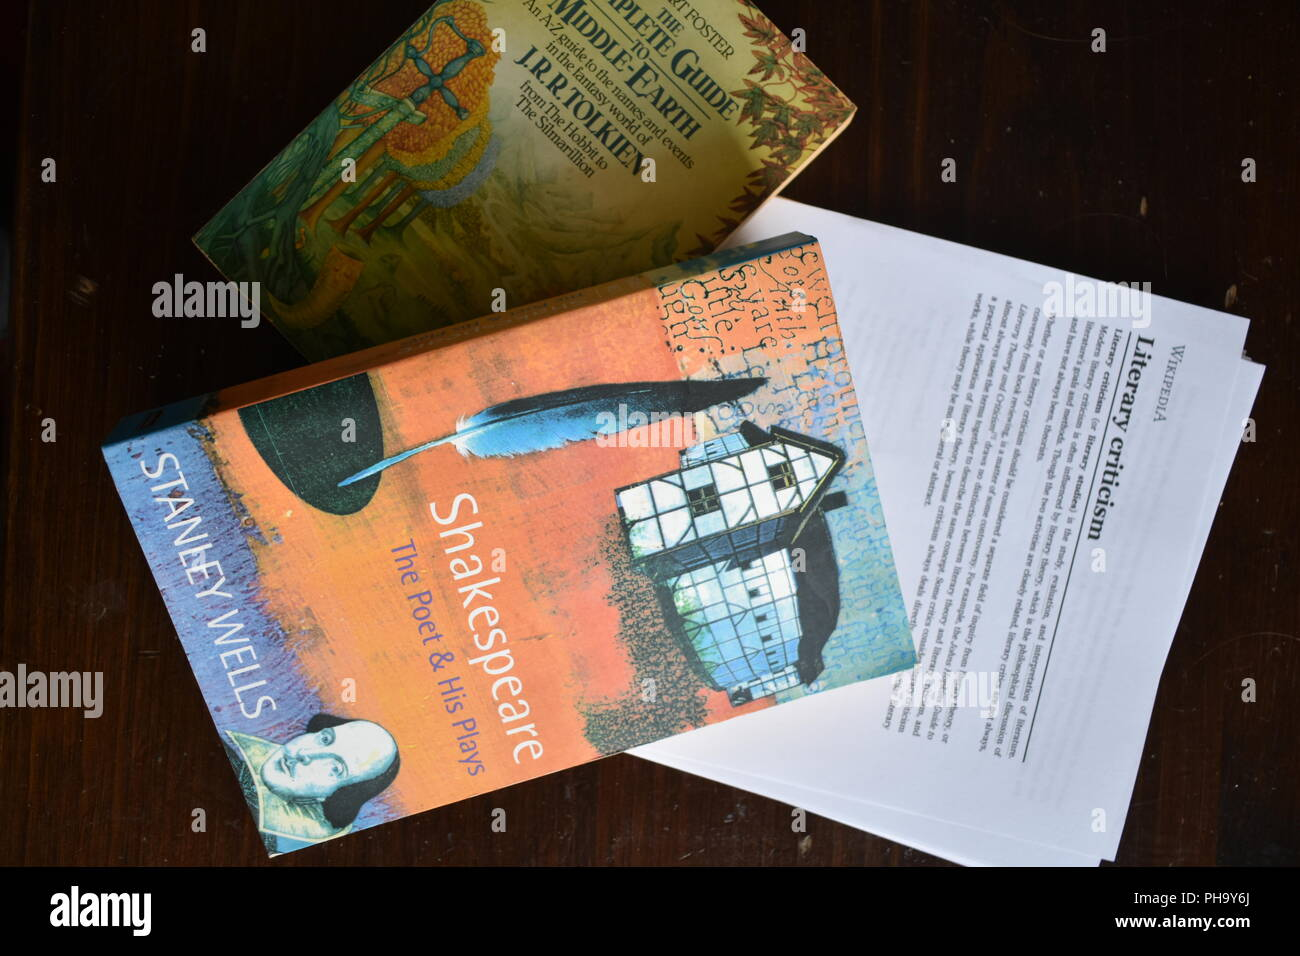 Books on literary criticism aand glasses/travel guide - Stock Image